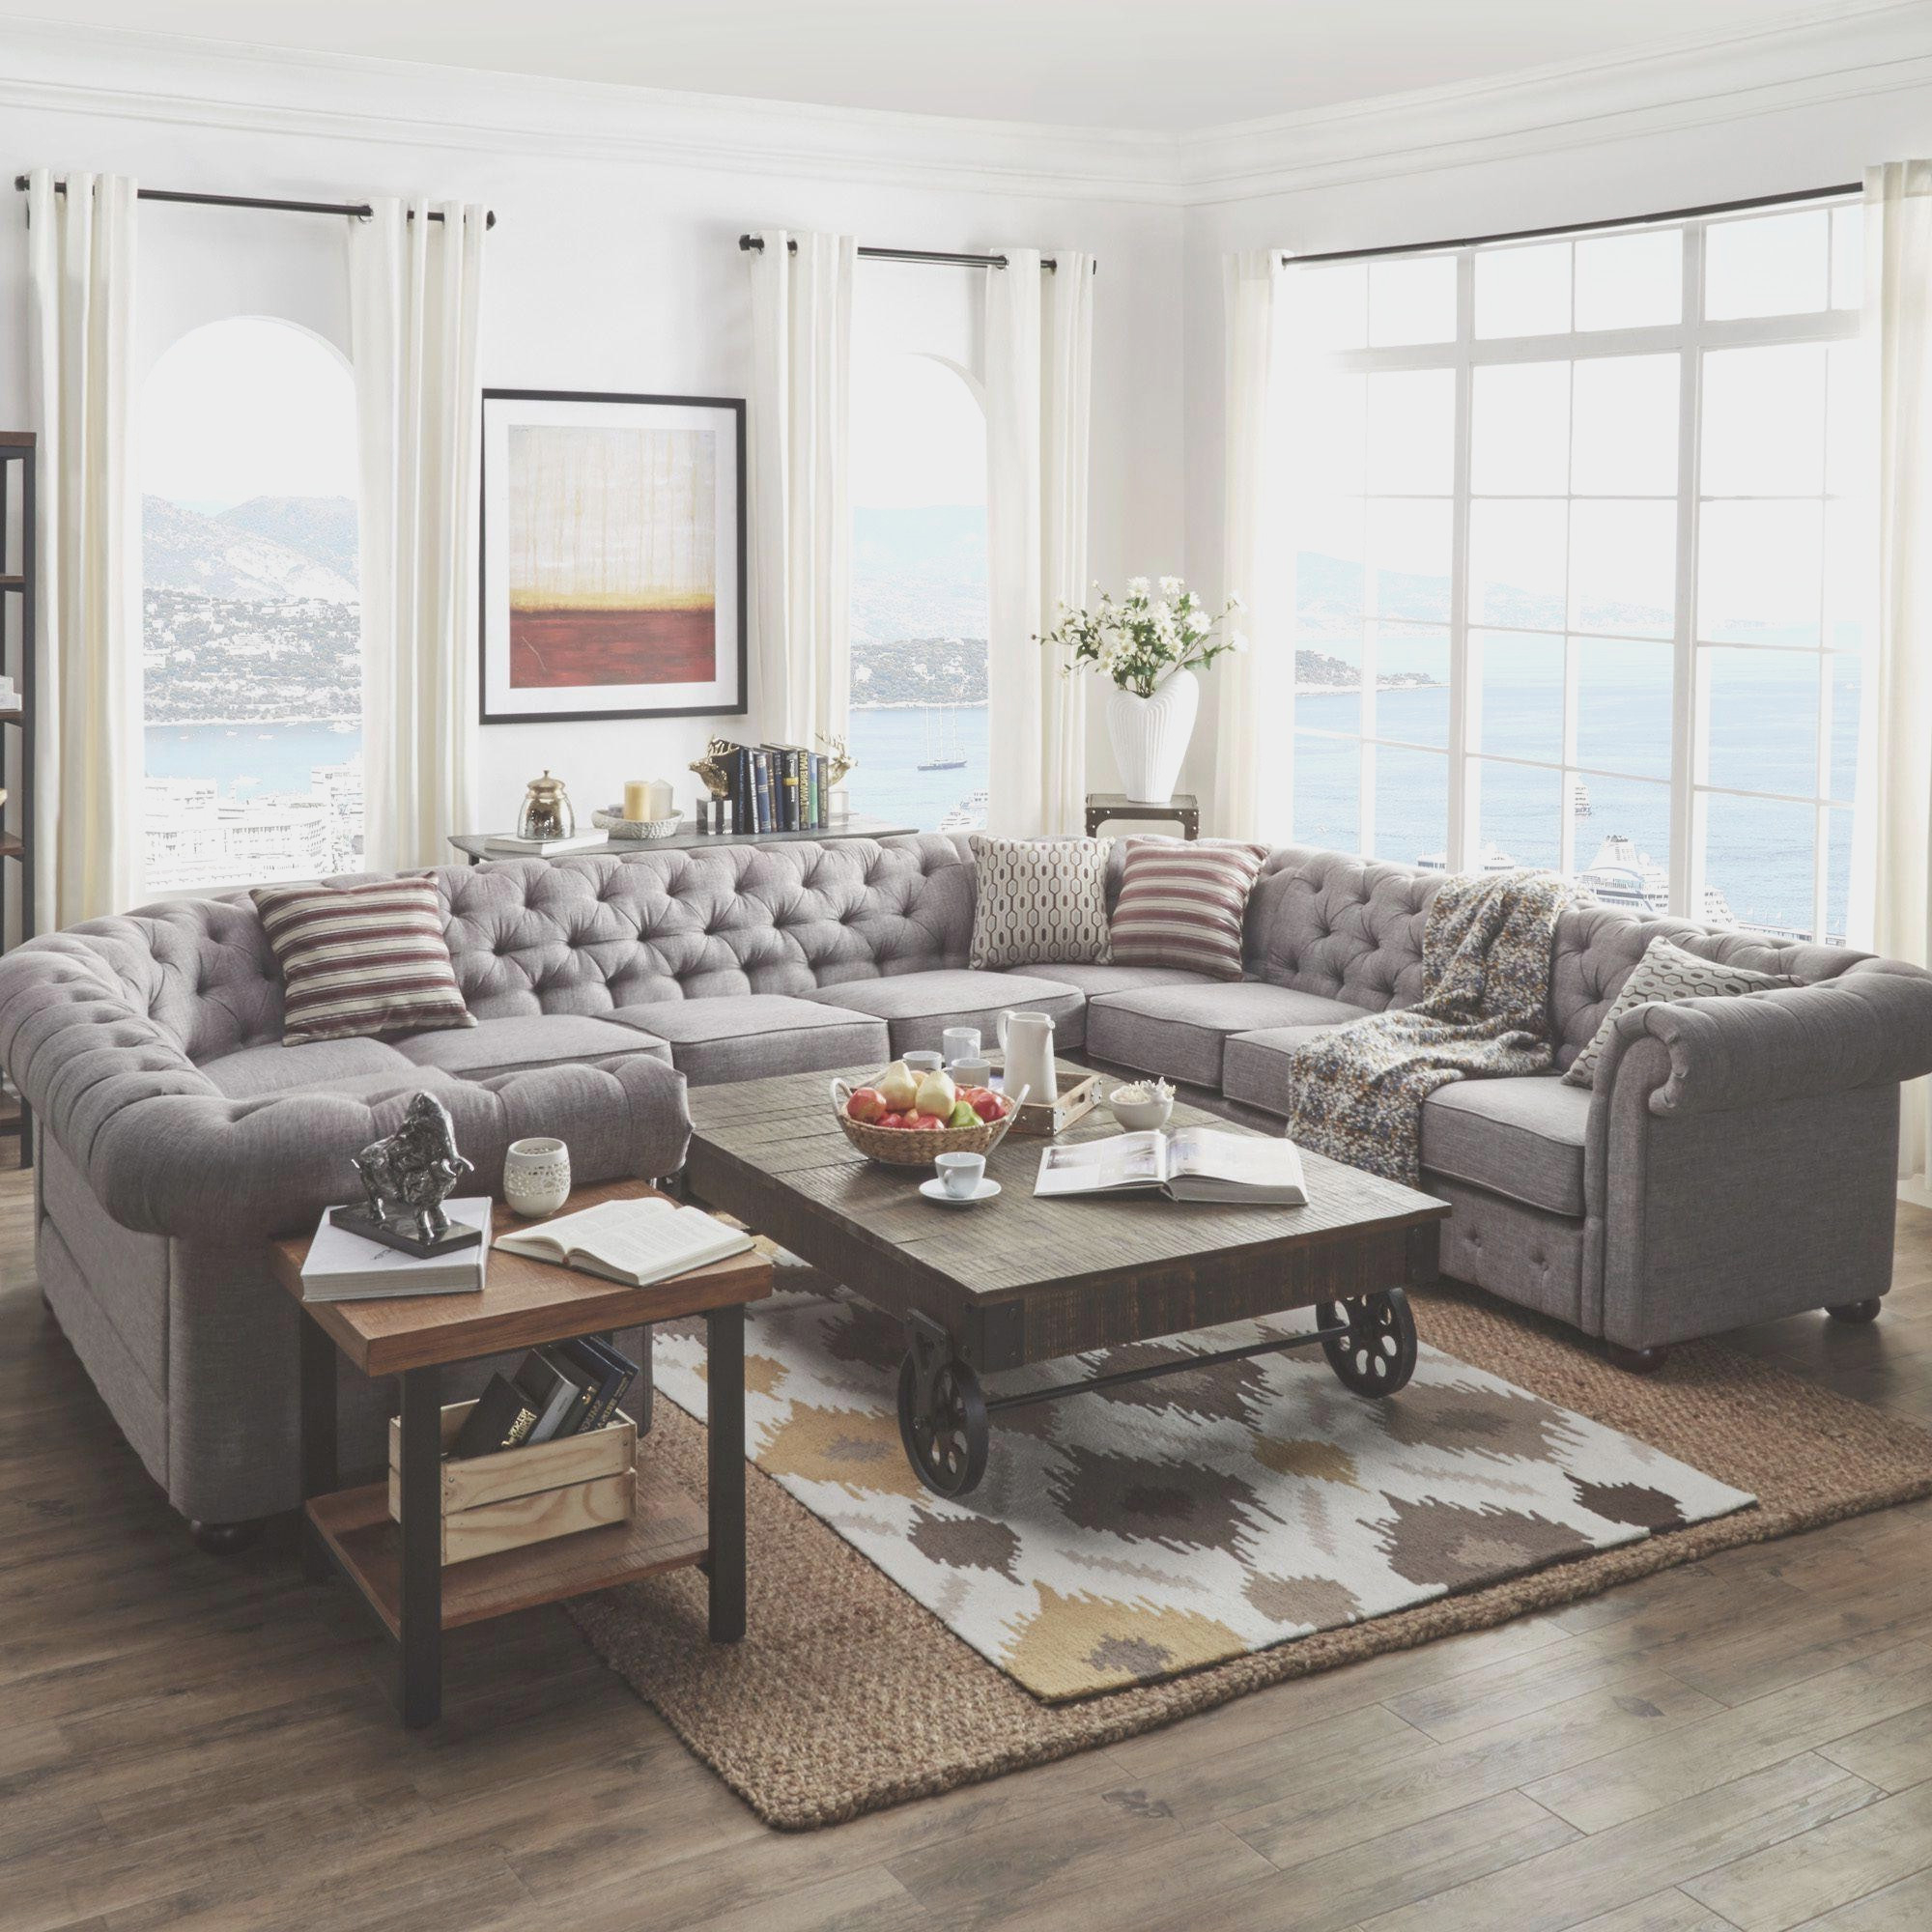 Homey Inspiration El Dorado Living Room Sets Bedroom Ideas pertaining to 10 Some of the Coolest Ideas How to Makeover El Dorado Living Room Sets